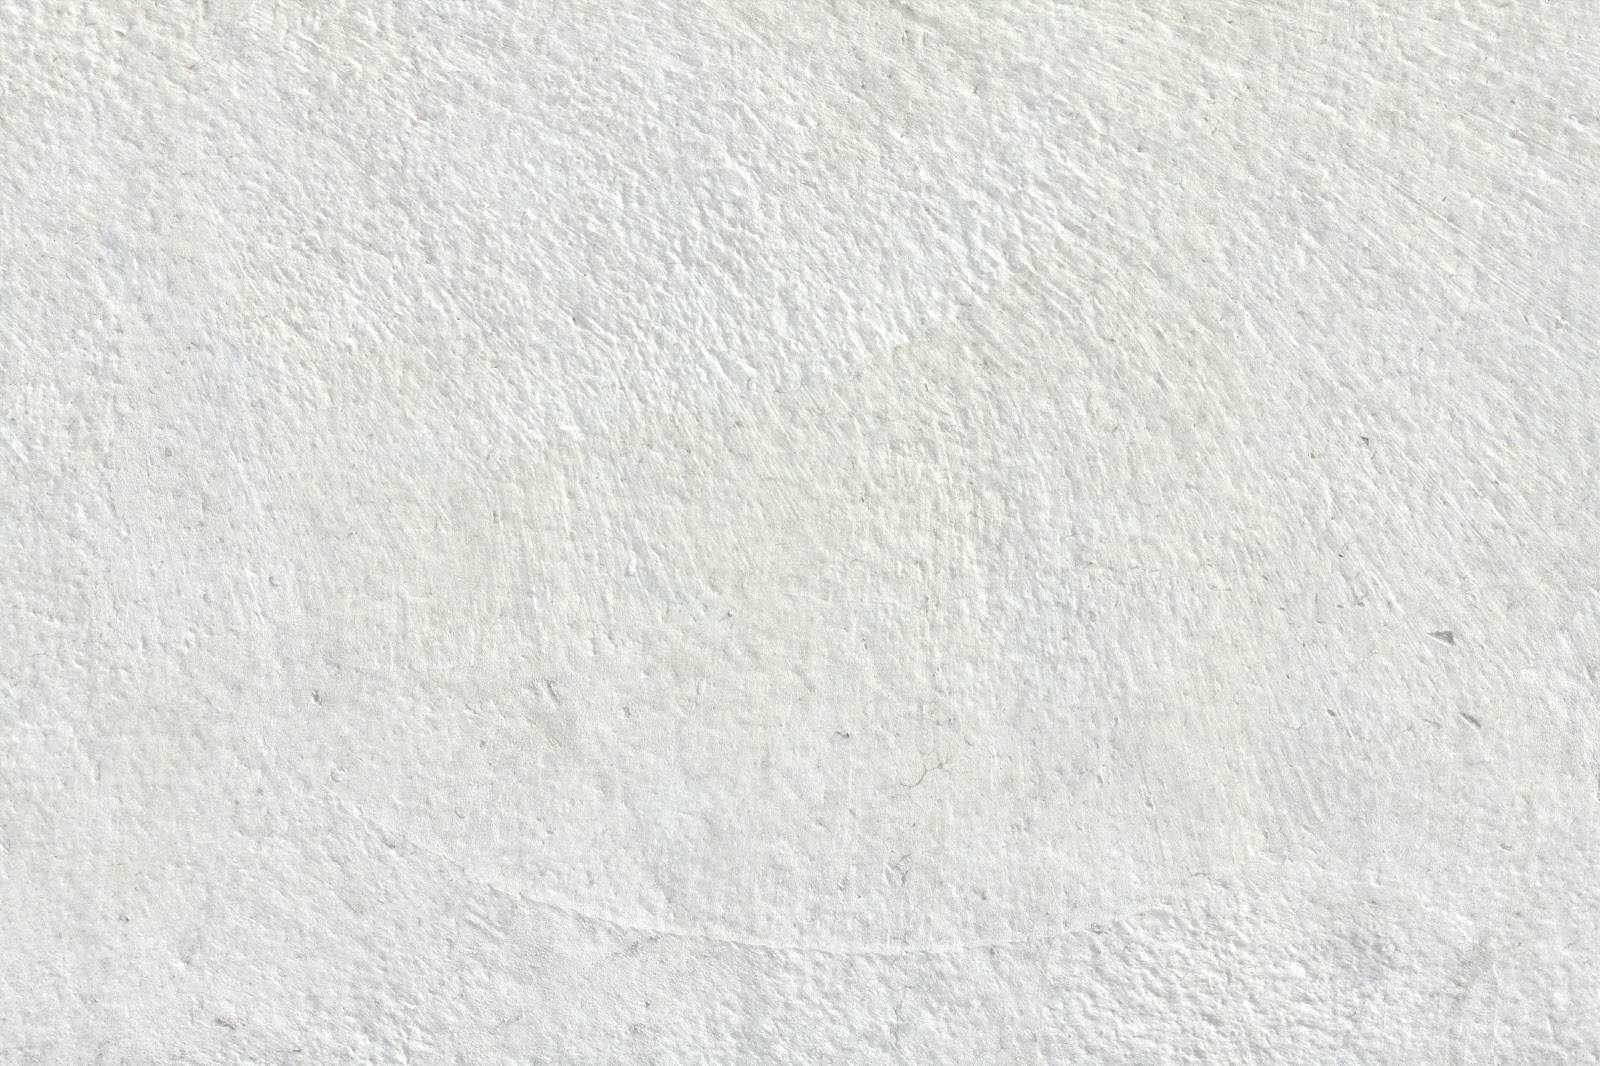 Wall stucco white painted texture 4770x3178